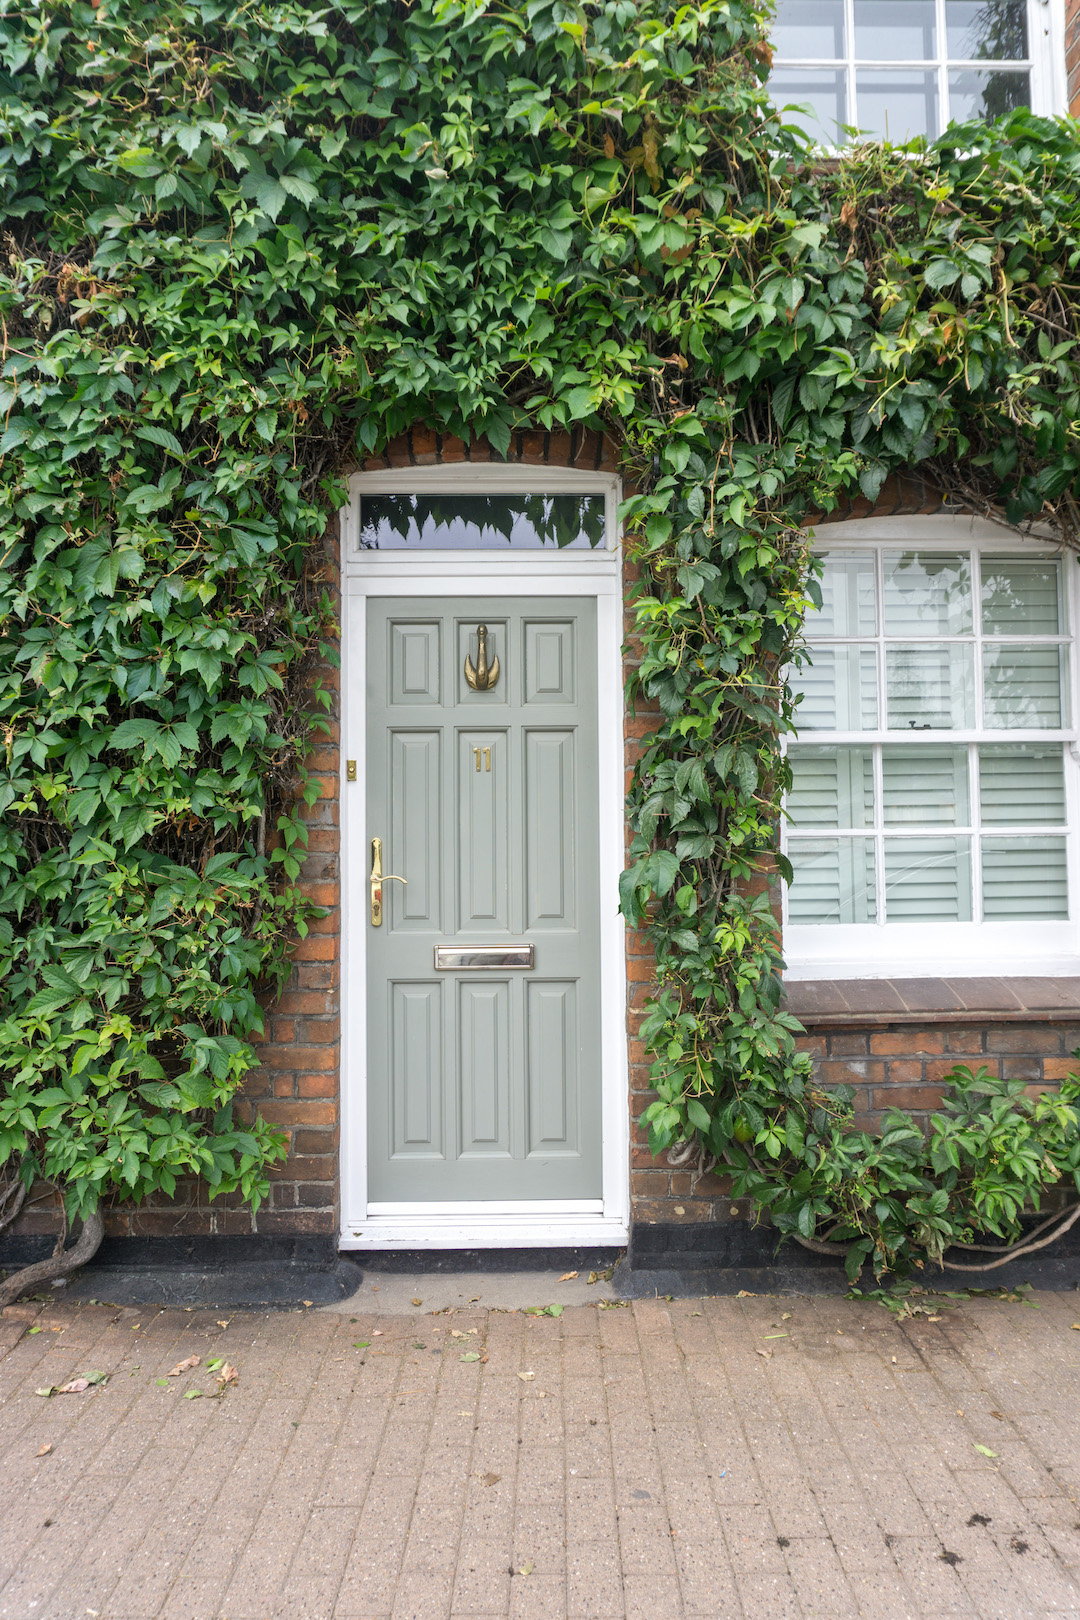 Green Door with Ivy, Henley on Thames